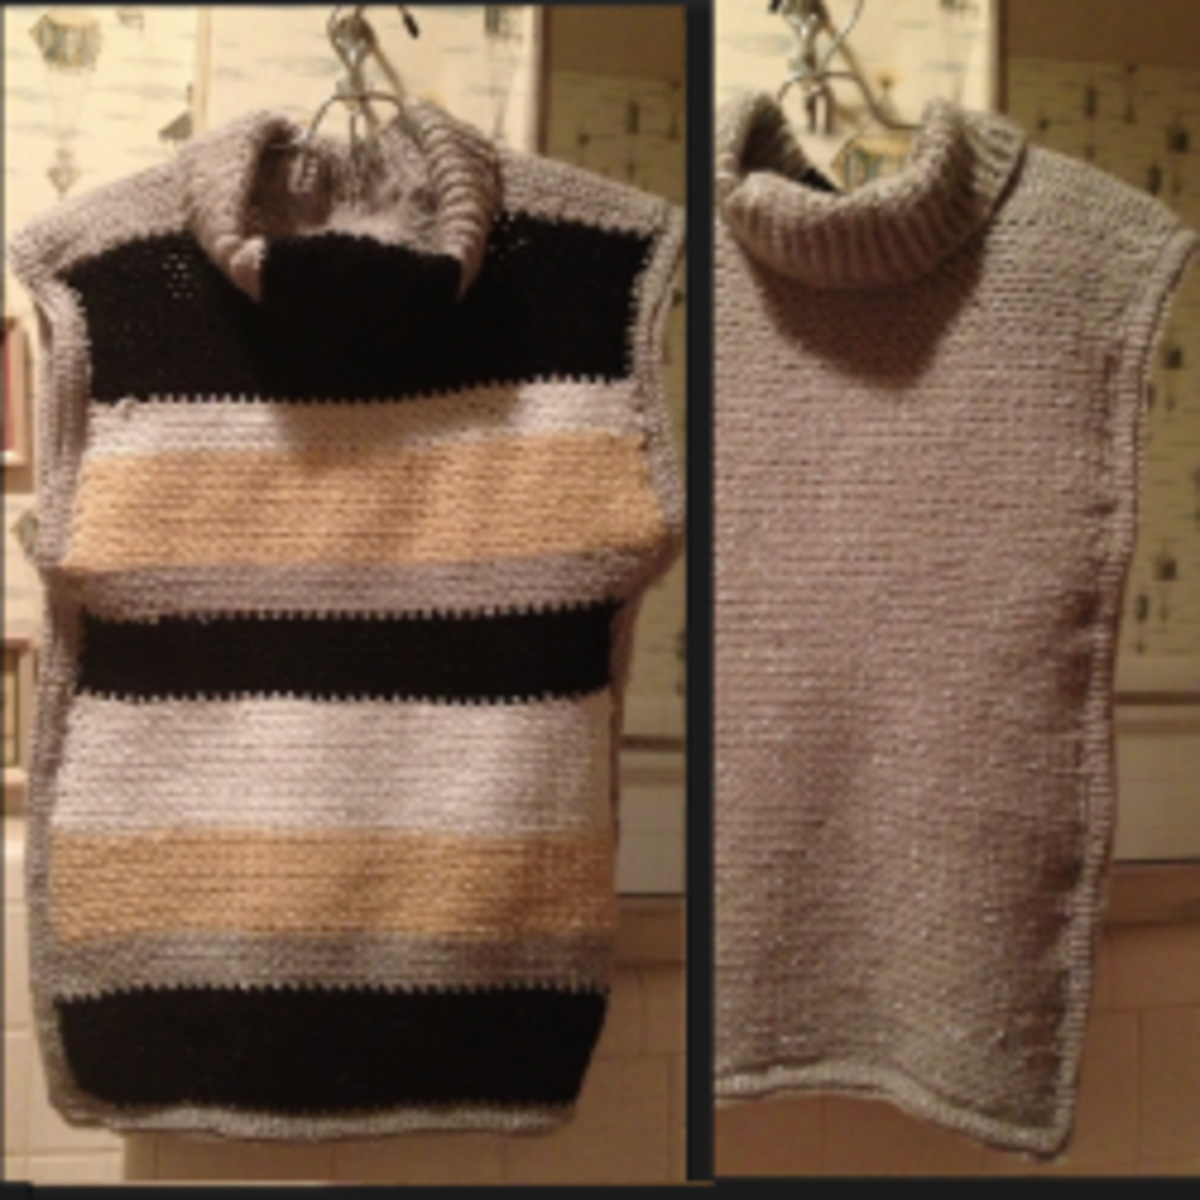 Custom Fit Sleeveless Reversible Turtleneck Sweater - Free Crochet Pattern!